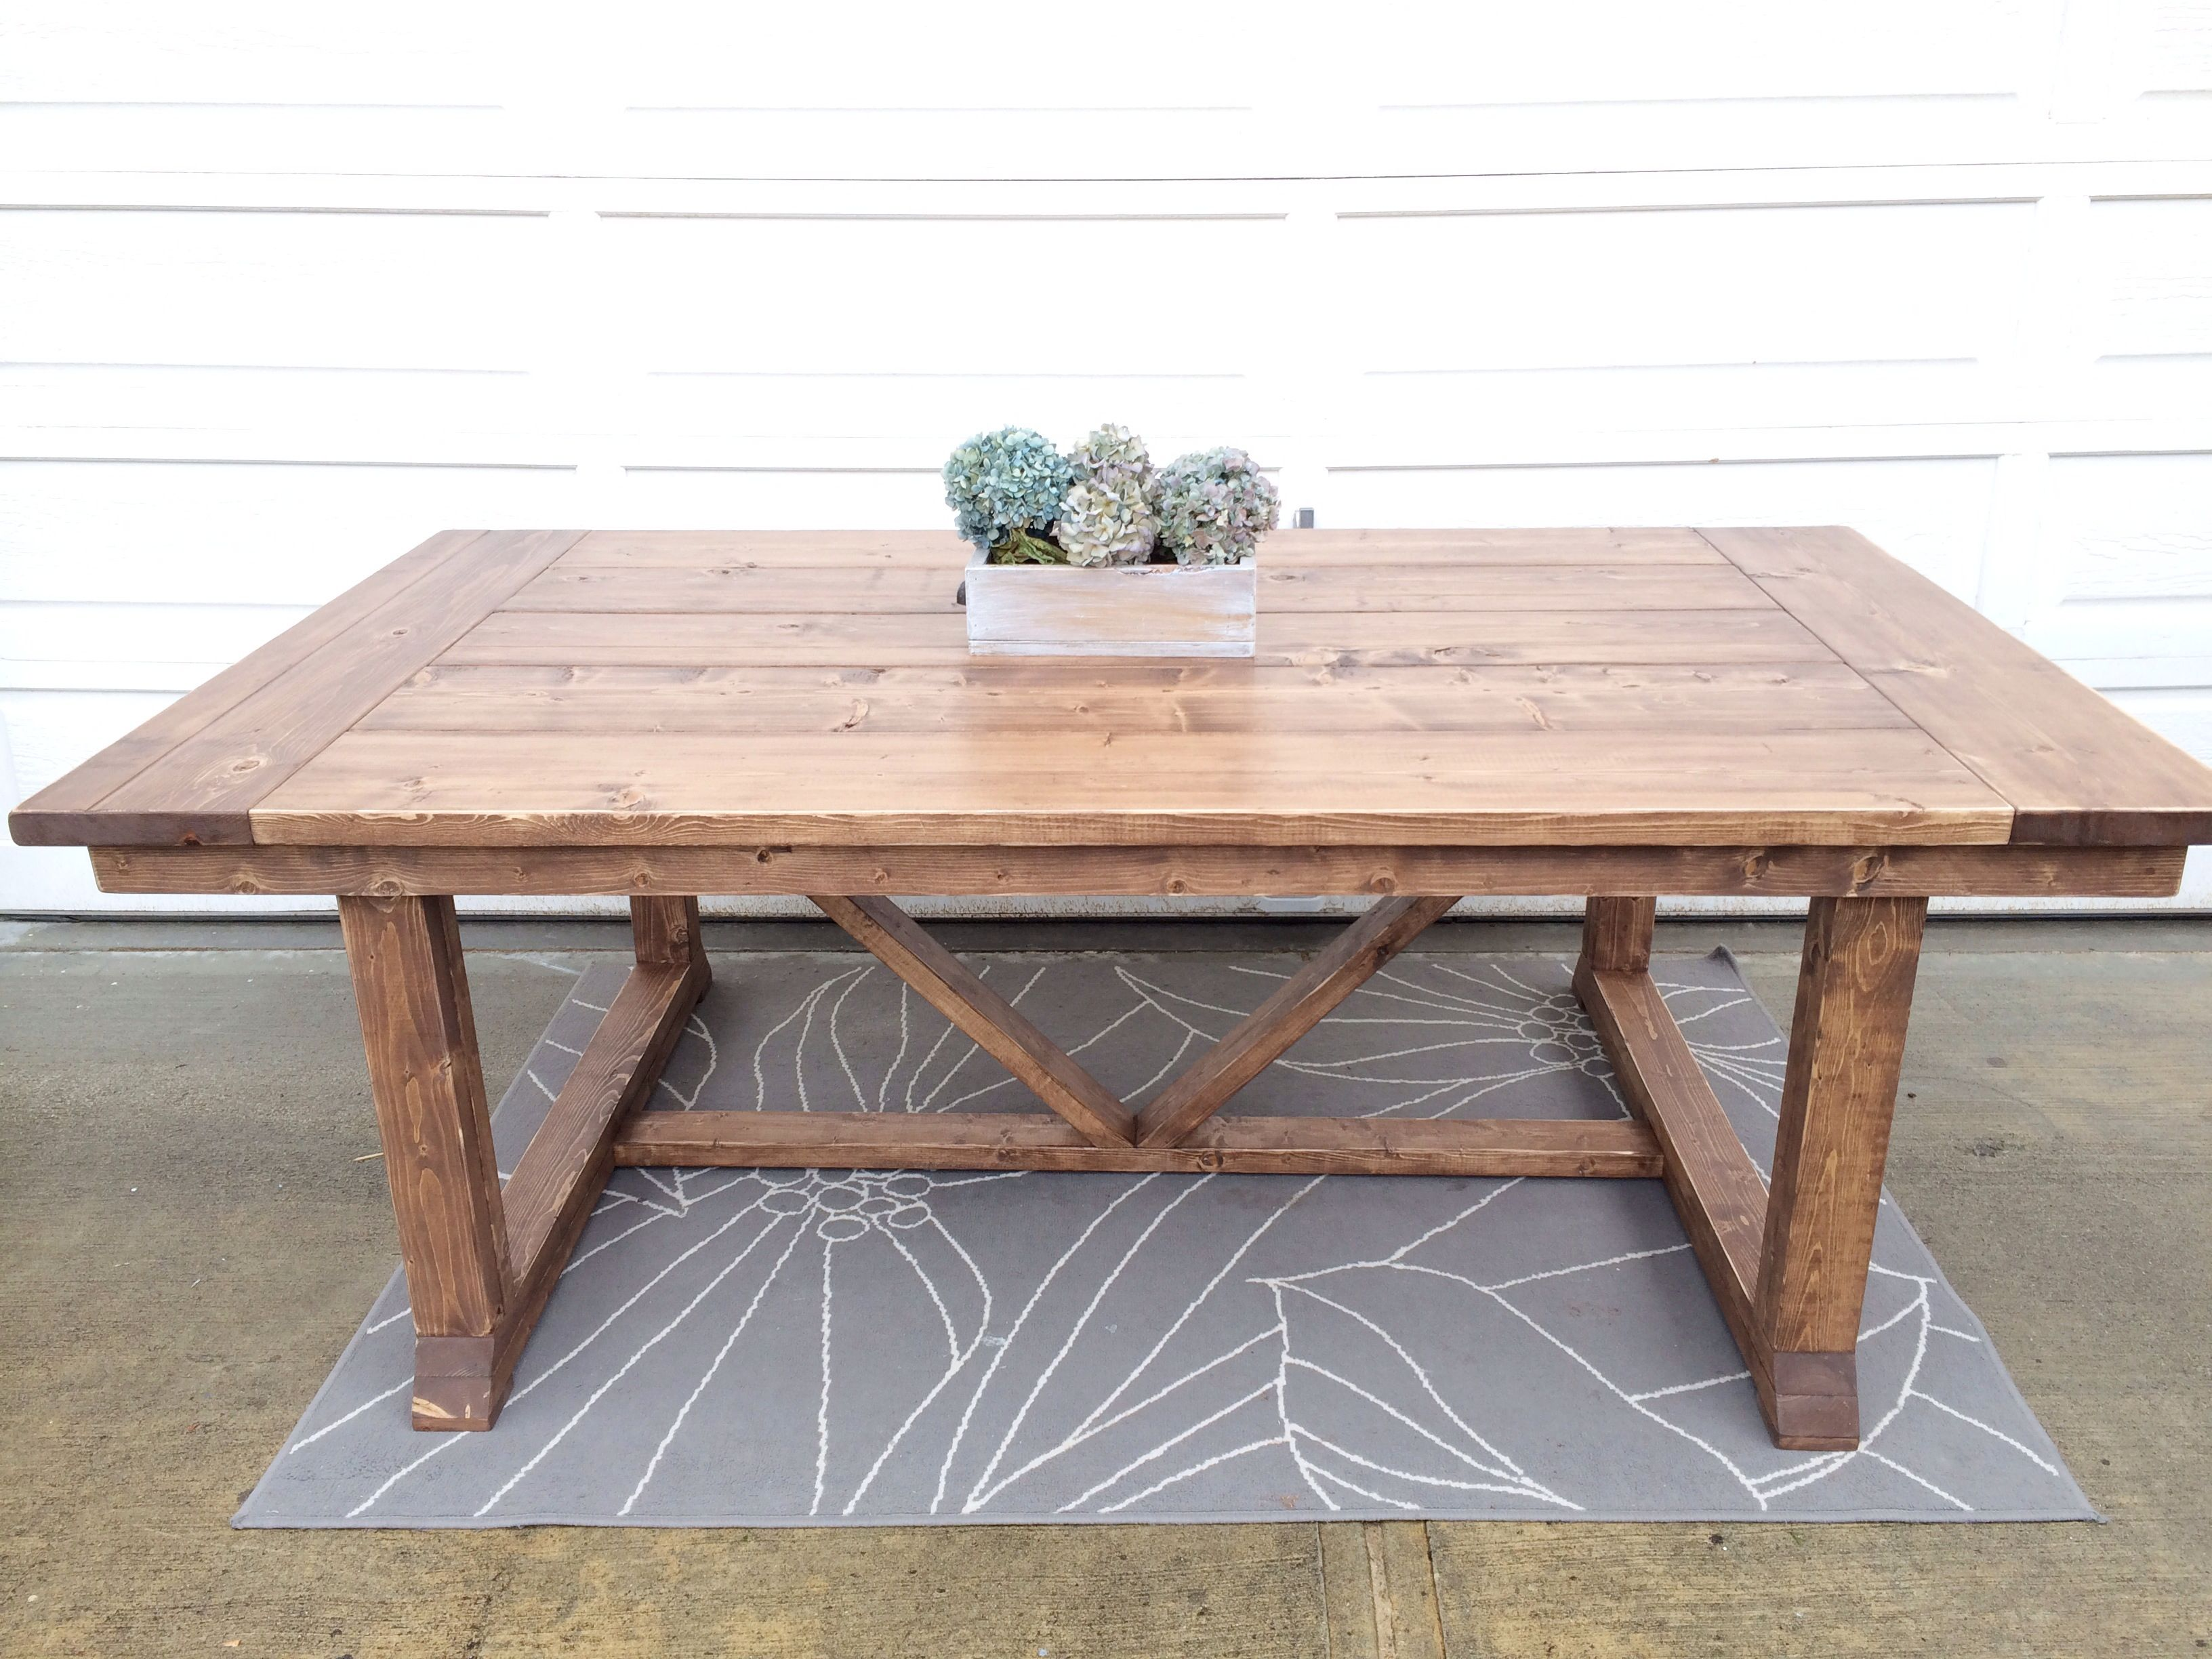 Special walnut design ideas amp remodel pictures houzz - Trestle Table Stained In A Weathered Oak Special Walnut Mix